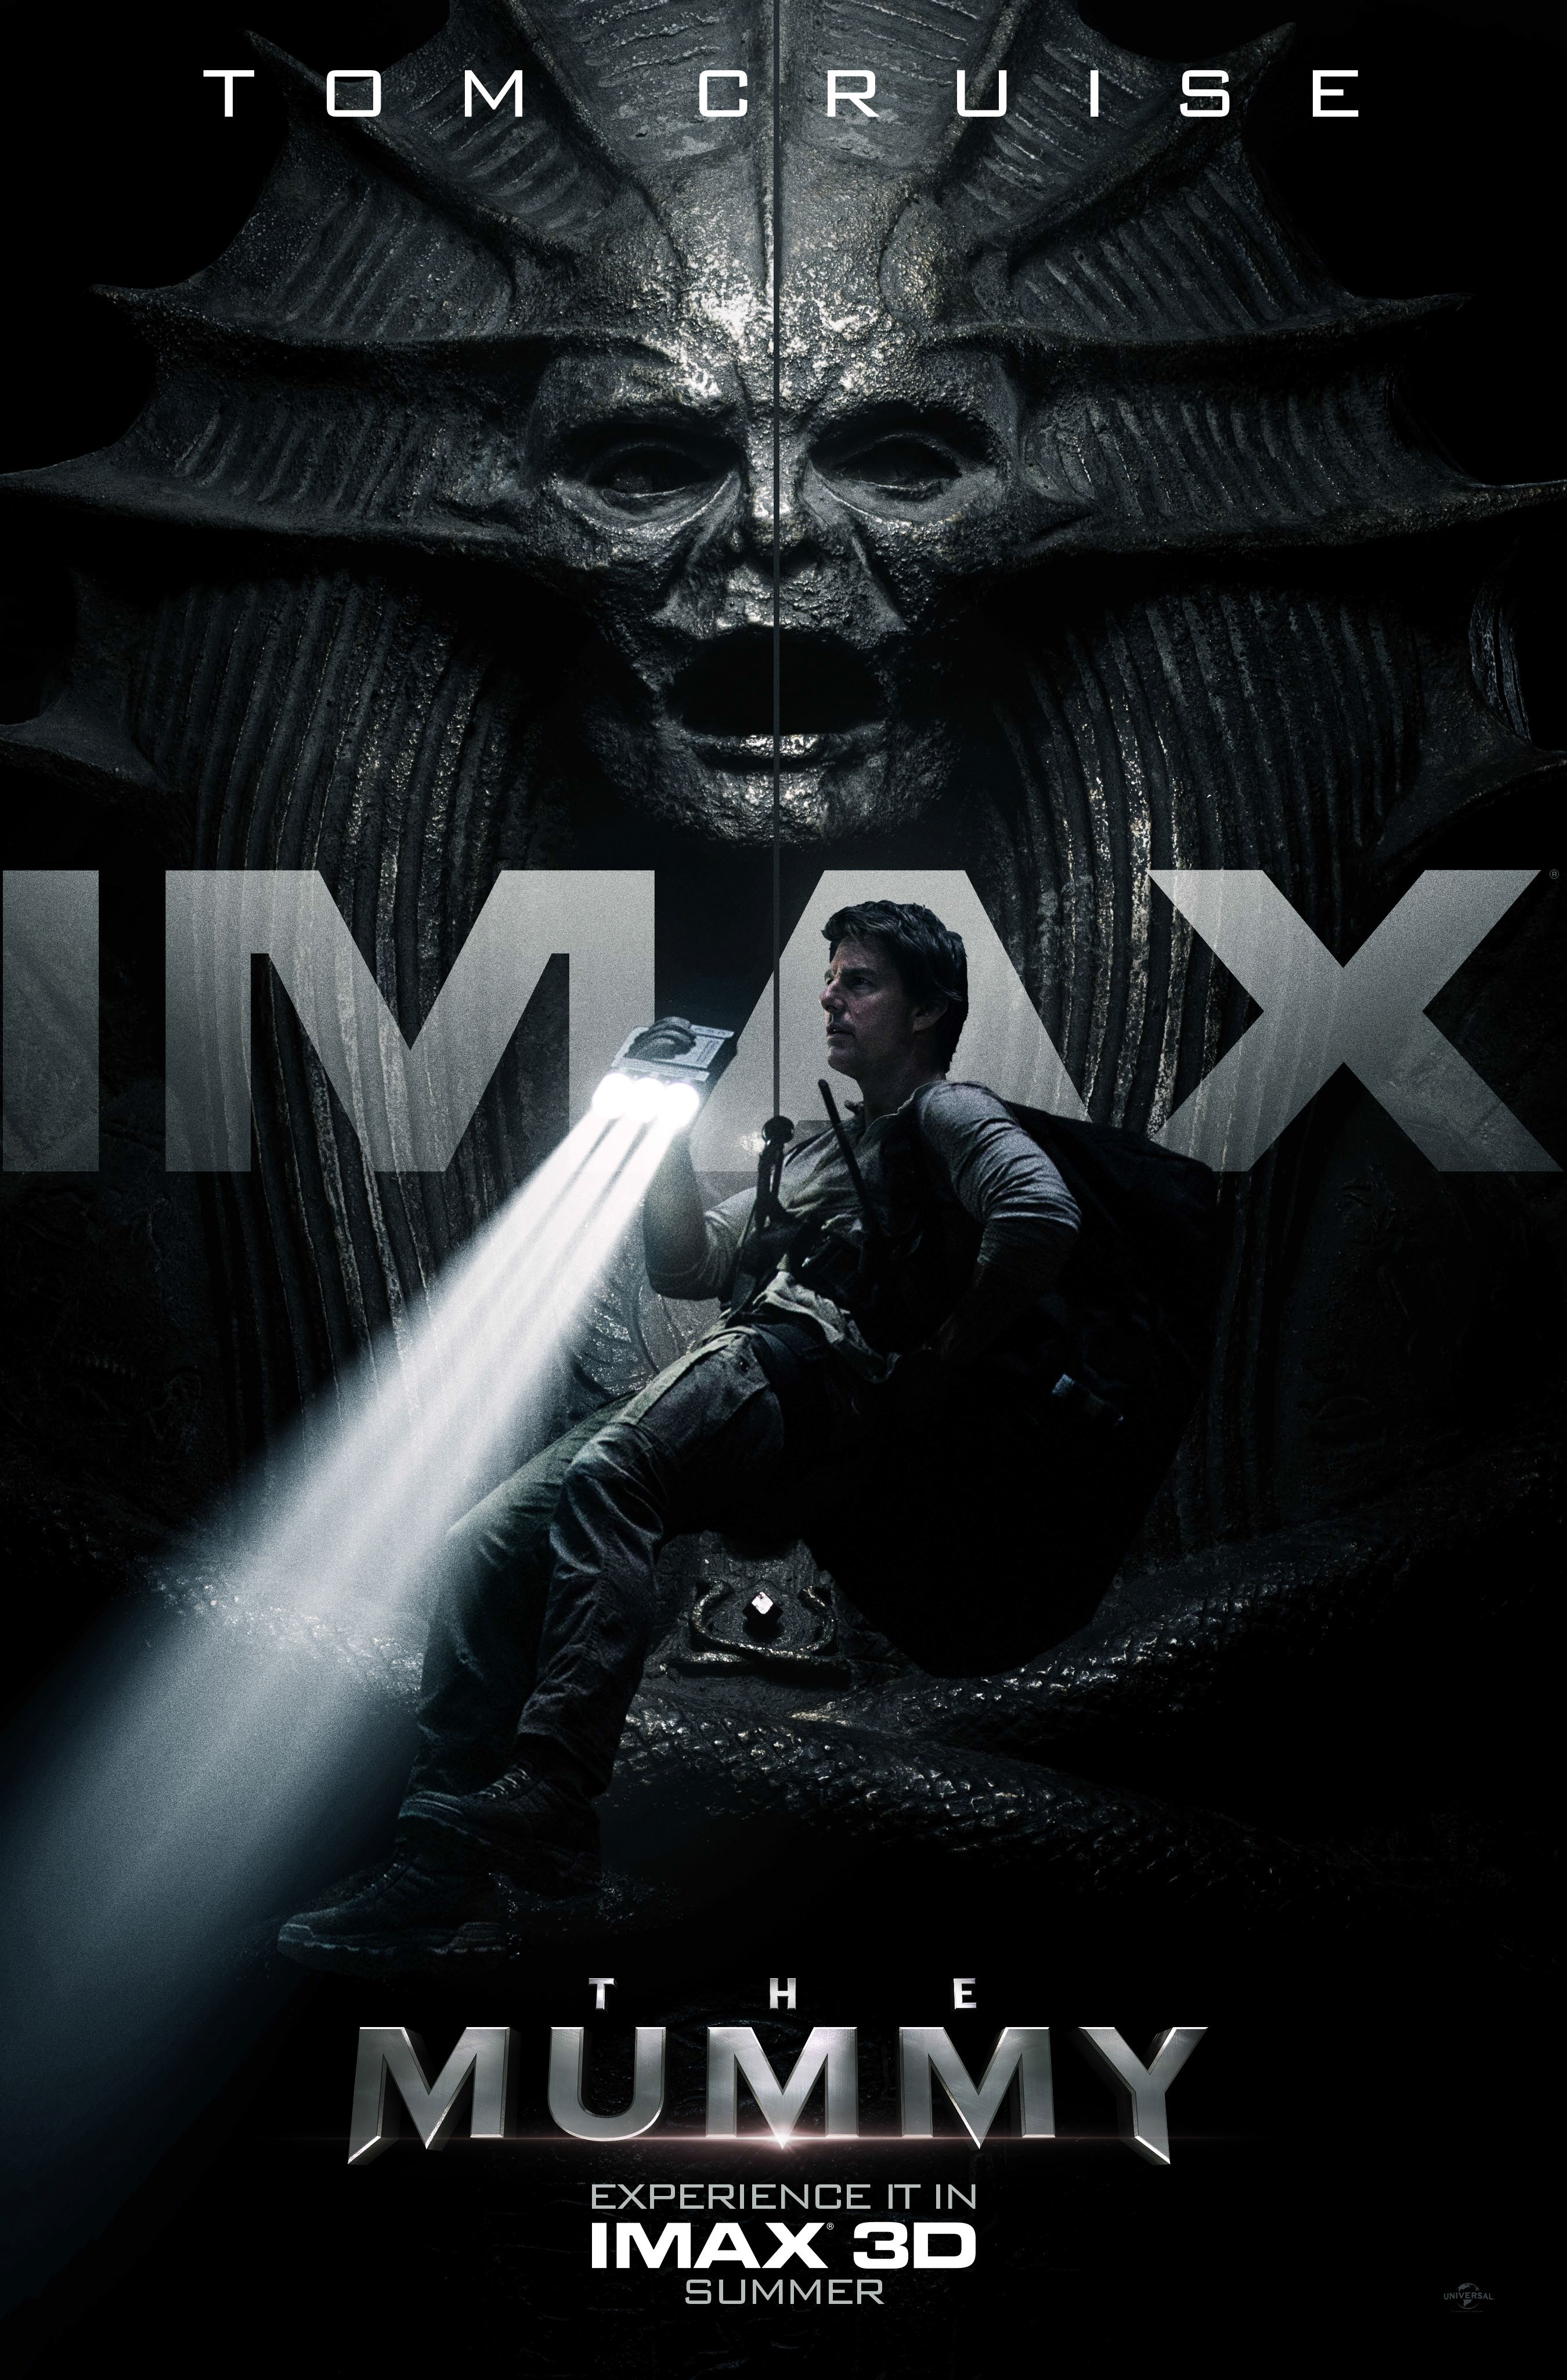 IMAX Releases A New Poster For 'The Mummy' - Bleeding Cool ...